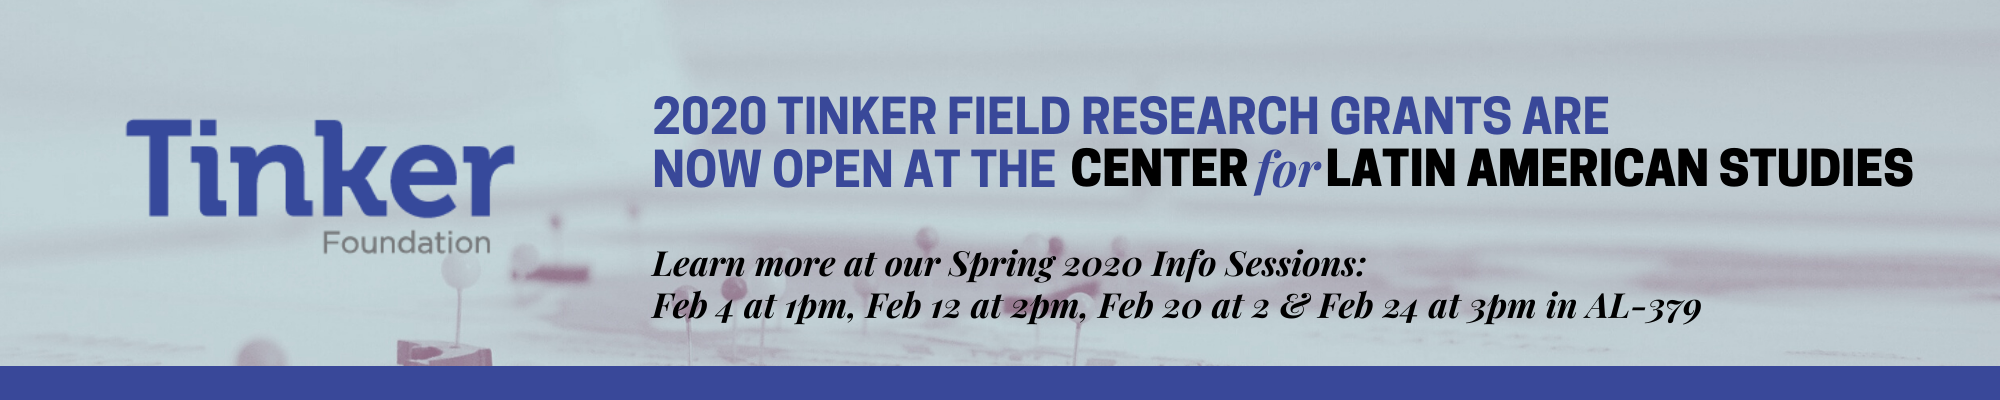 2020 TINKER FIELD RESEARCH GRANTS ARE NOW OPEN AT THE CENTERforLATIN AMERICAN STUDIES Learn more at our Spring 2020 Info Se.􀀁sions: Feb 4 at 1pm, Feb 12 at 2pm, Feb 20 at 2 & Feb 24 at 3pm in AL-379